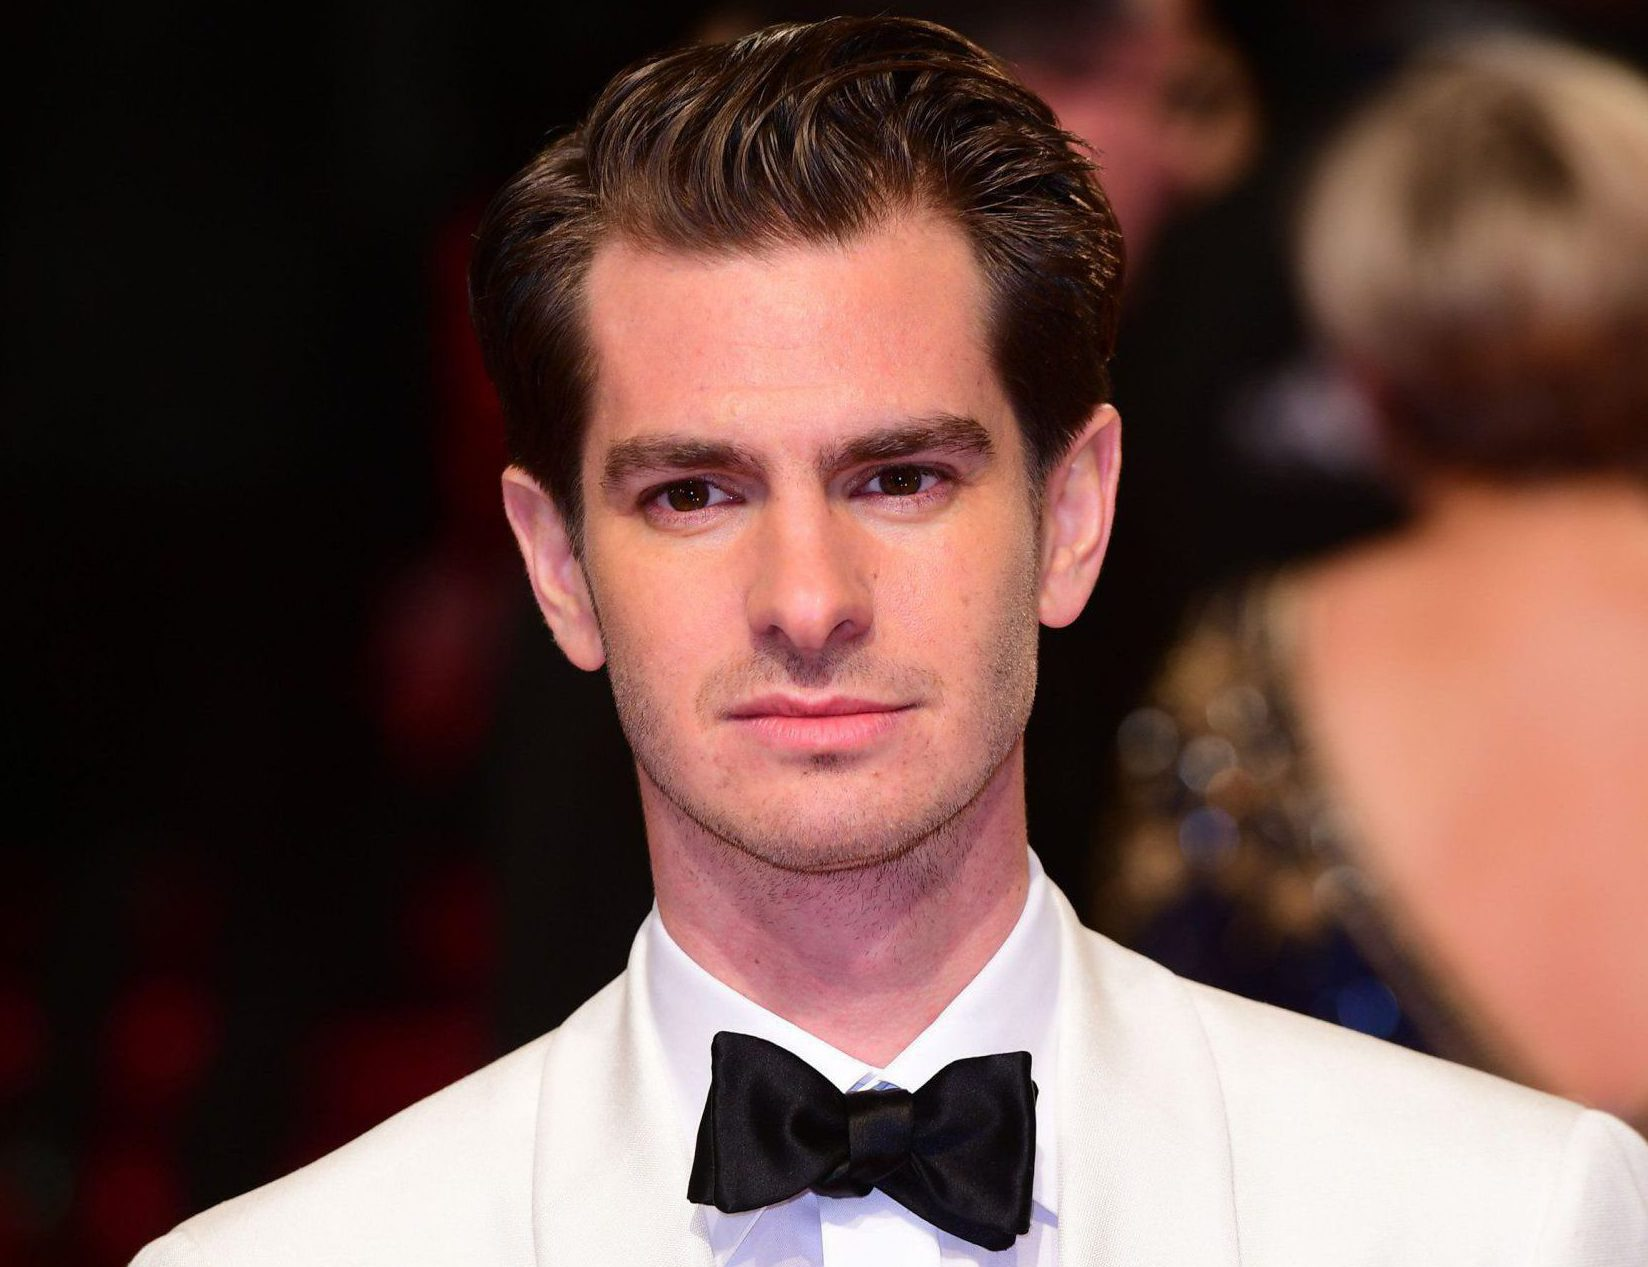 Andrew Garfield says he feels like a gay man right now, just without the physical act